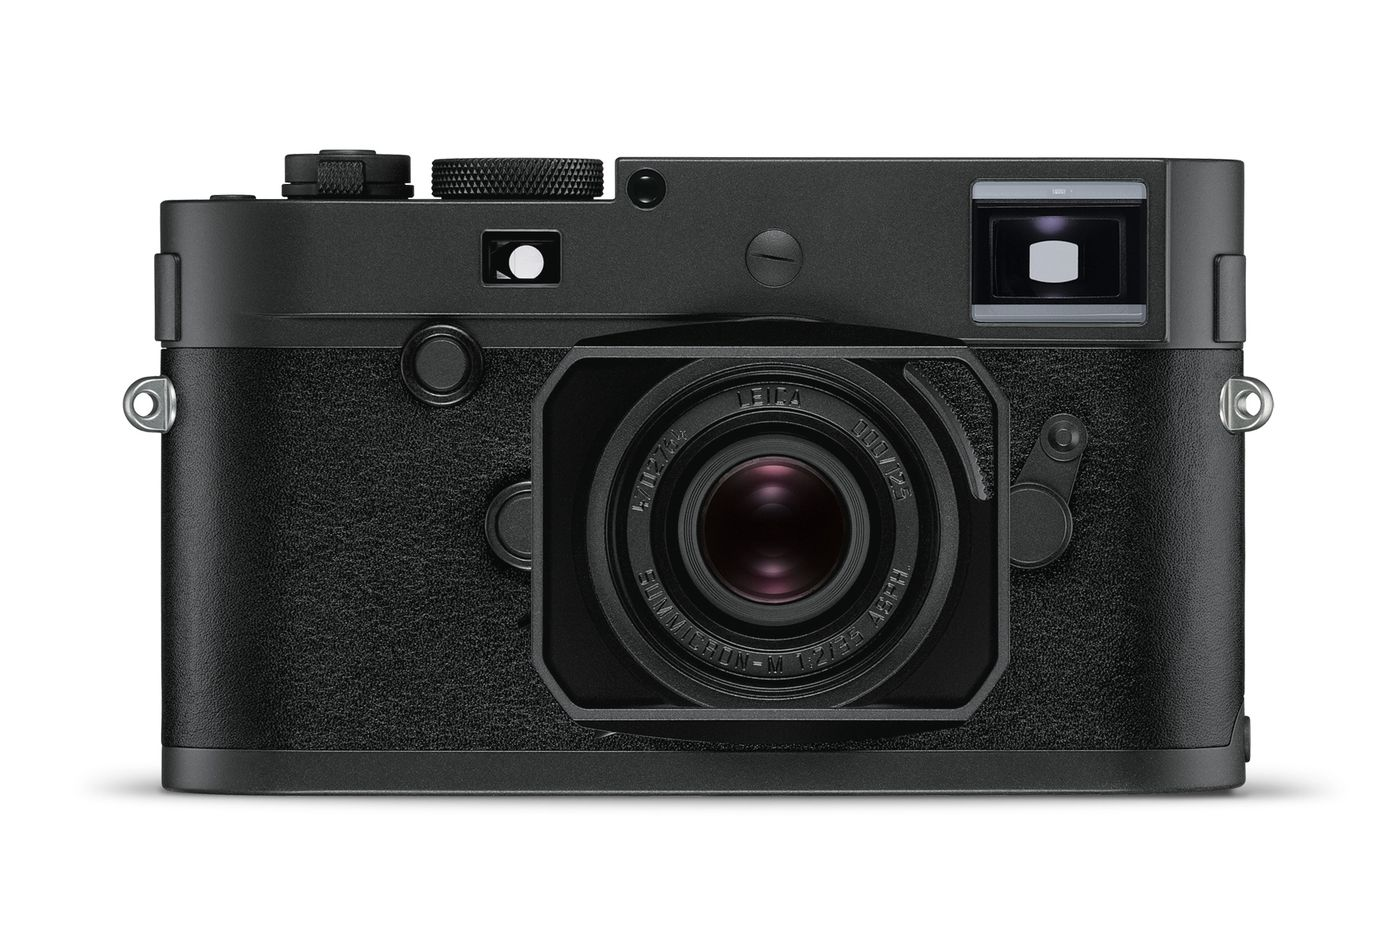 Leica's 'stealth edition' Monochrom camera is all black and glows in